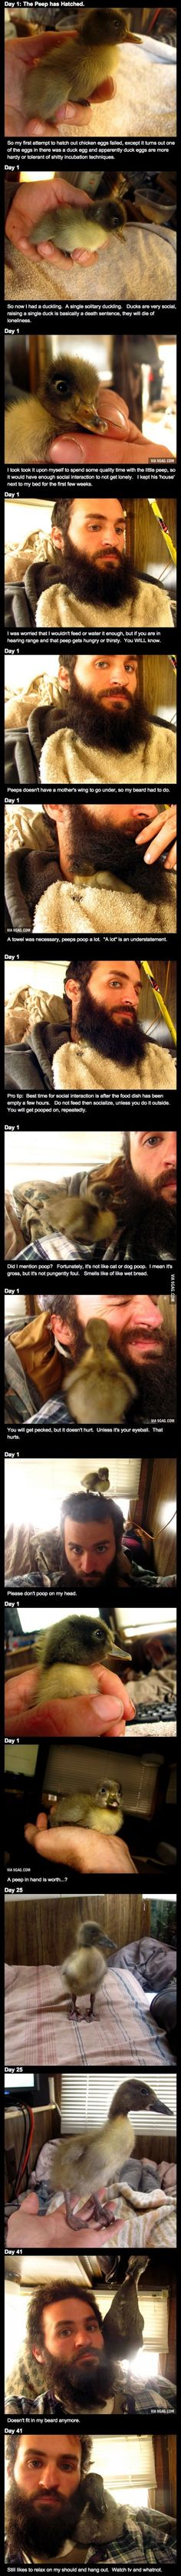 A man, His beard, And a ducky